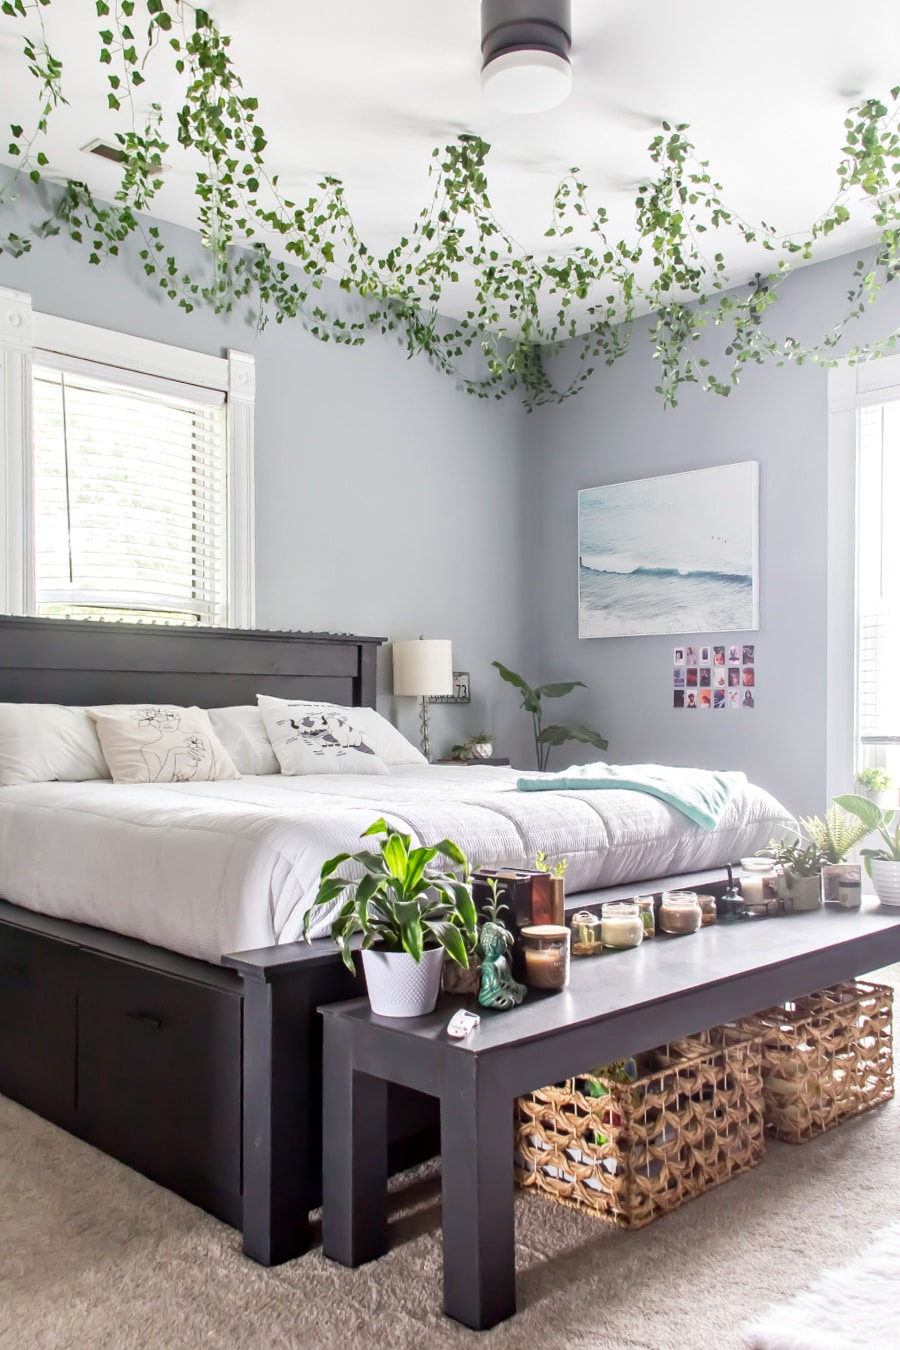 bedroom idea teenage girl with black furniture, grey walls, white decor, plants on the ceiling, and decorations.